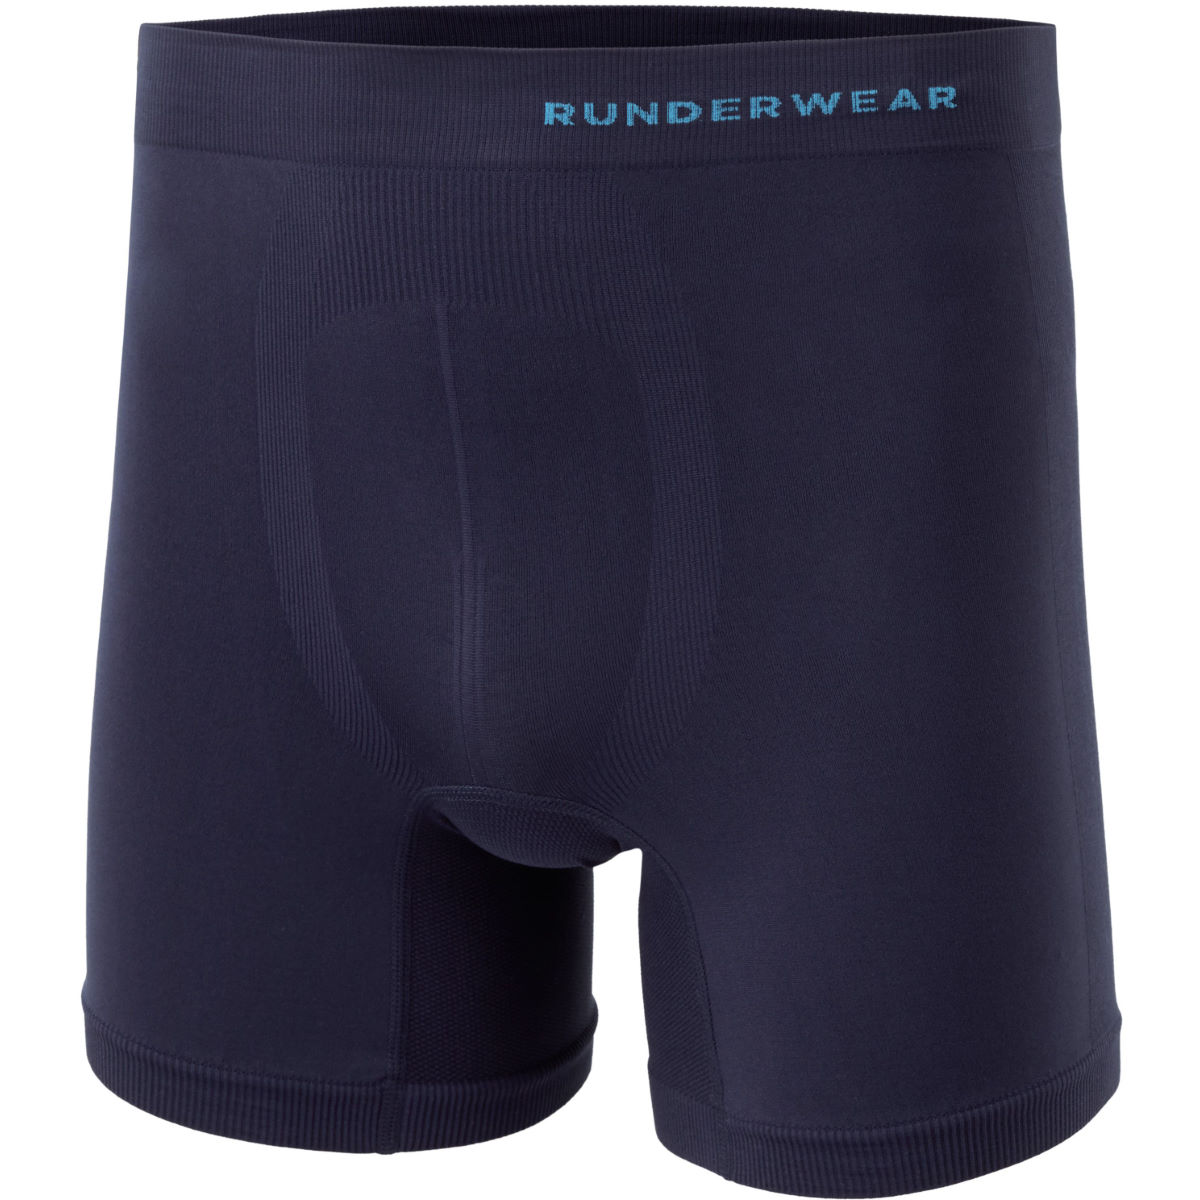 Image of Boxer Runderwear - Small Bleu marine | Sous-vêtements